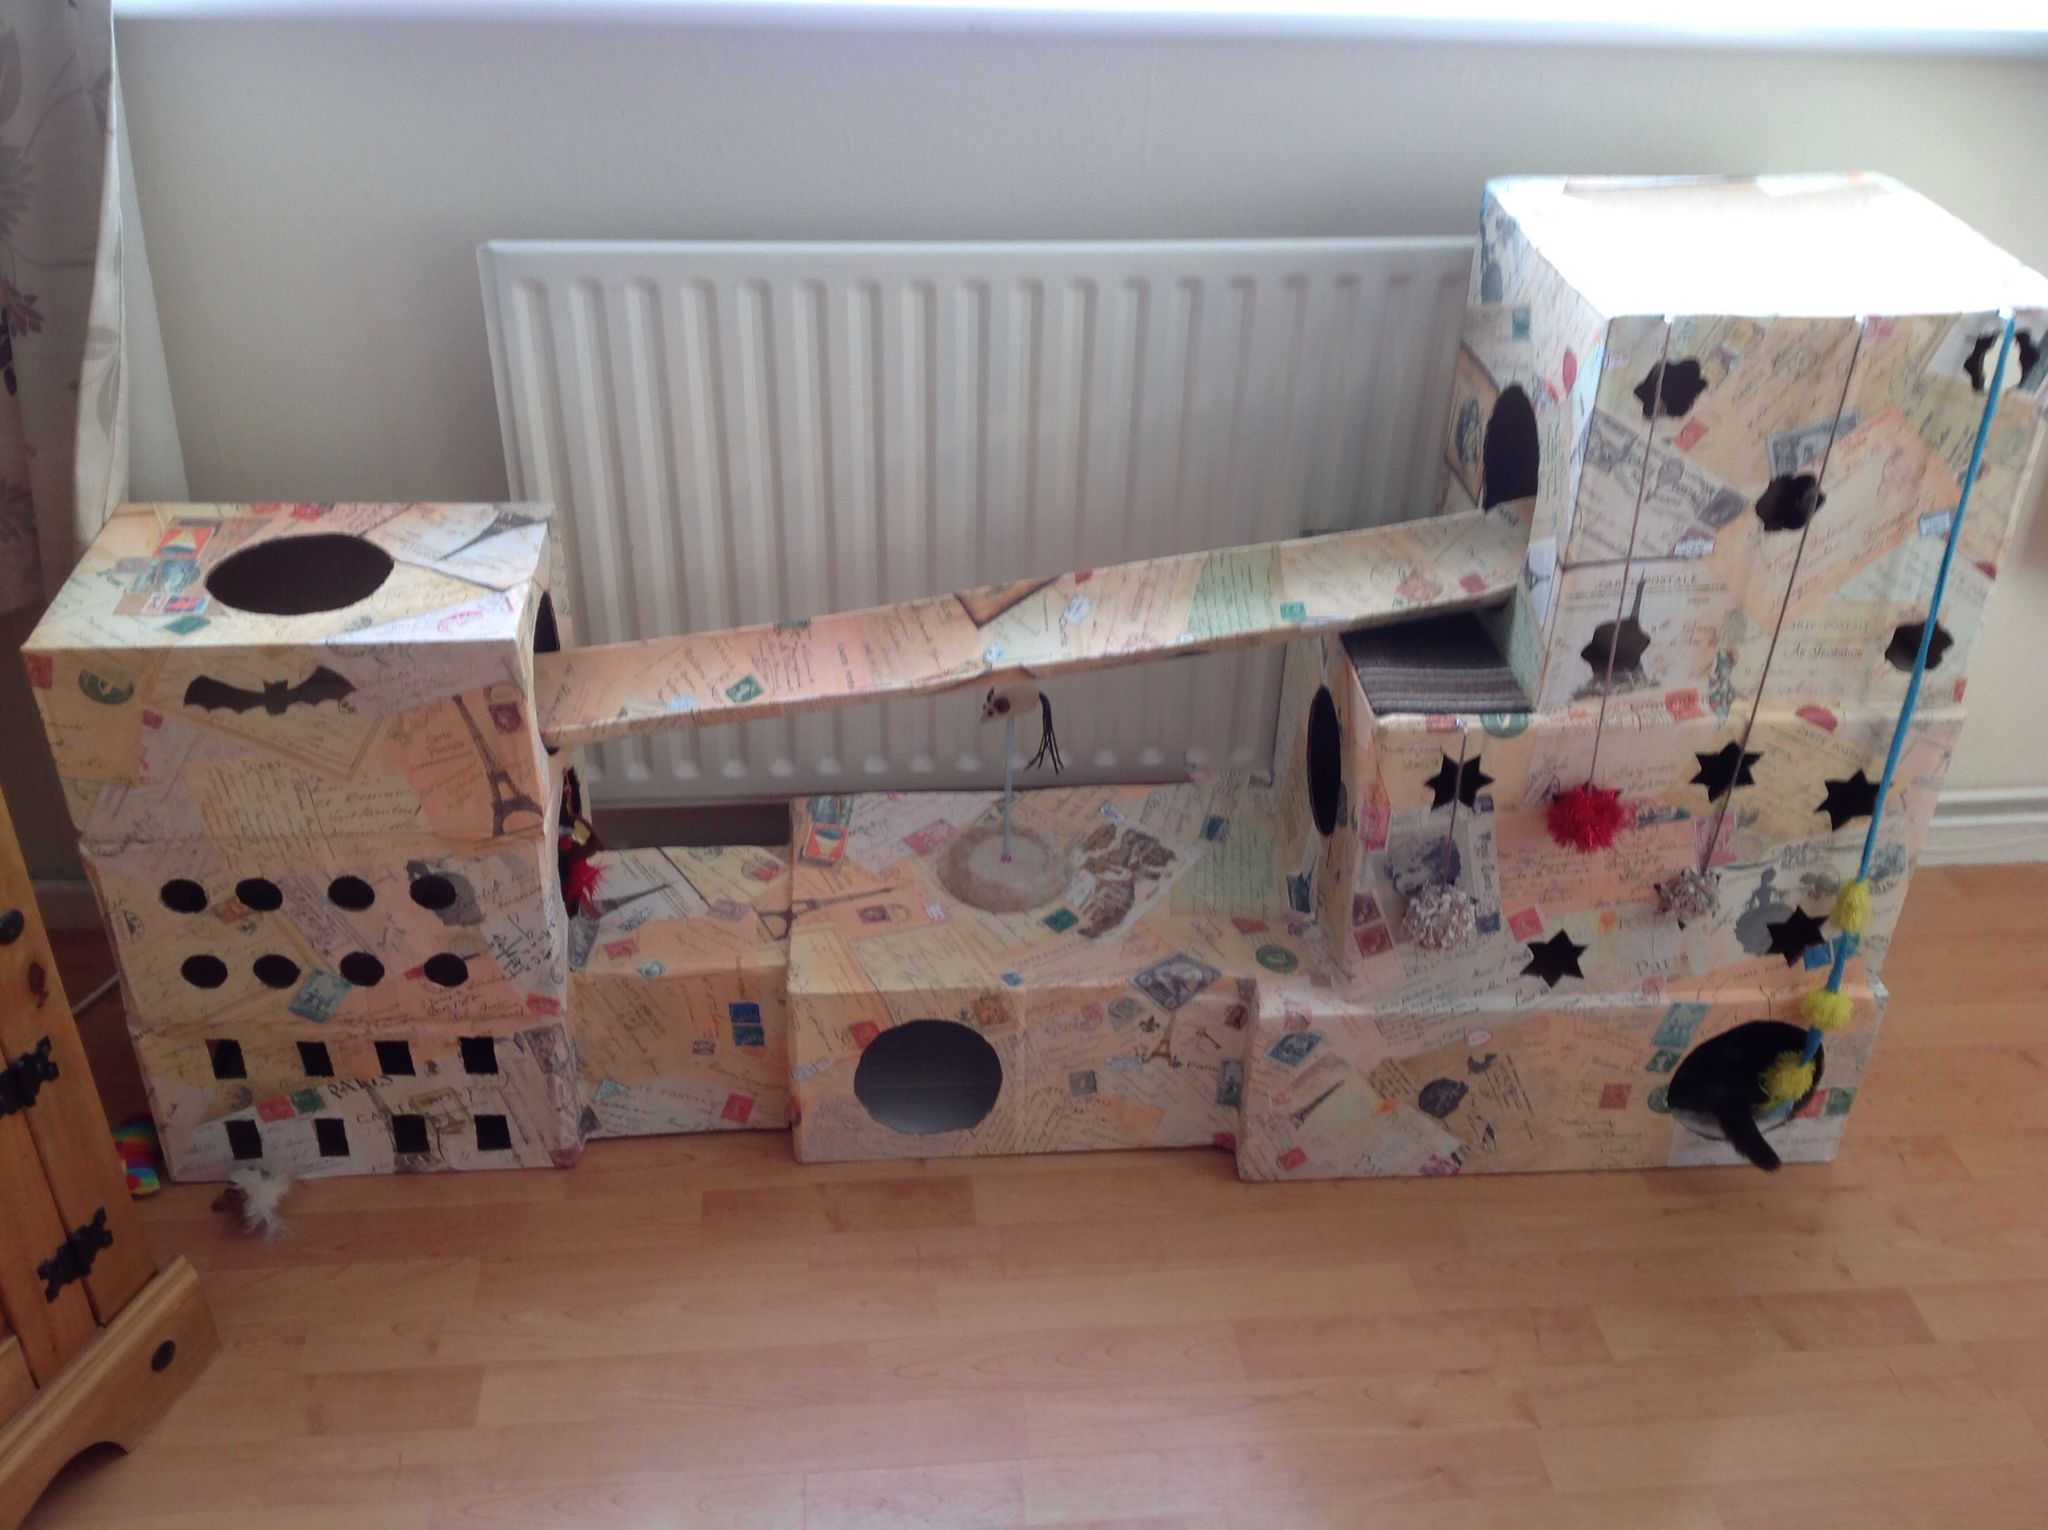 I Created This As A Playhouse For My Cat It S Made Out Of Old Cardboard Boxes And Glued Together With Pva Glue Cardboard Cat House Diy Cat Toys Cat House Diy